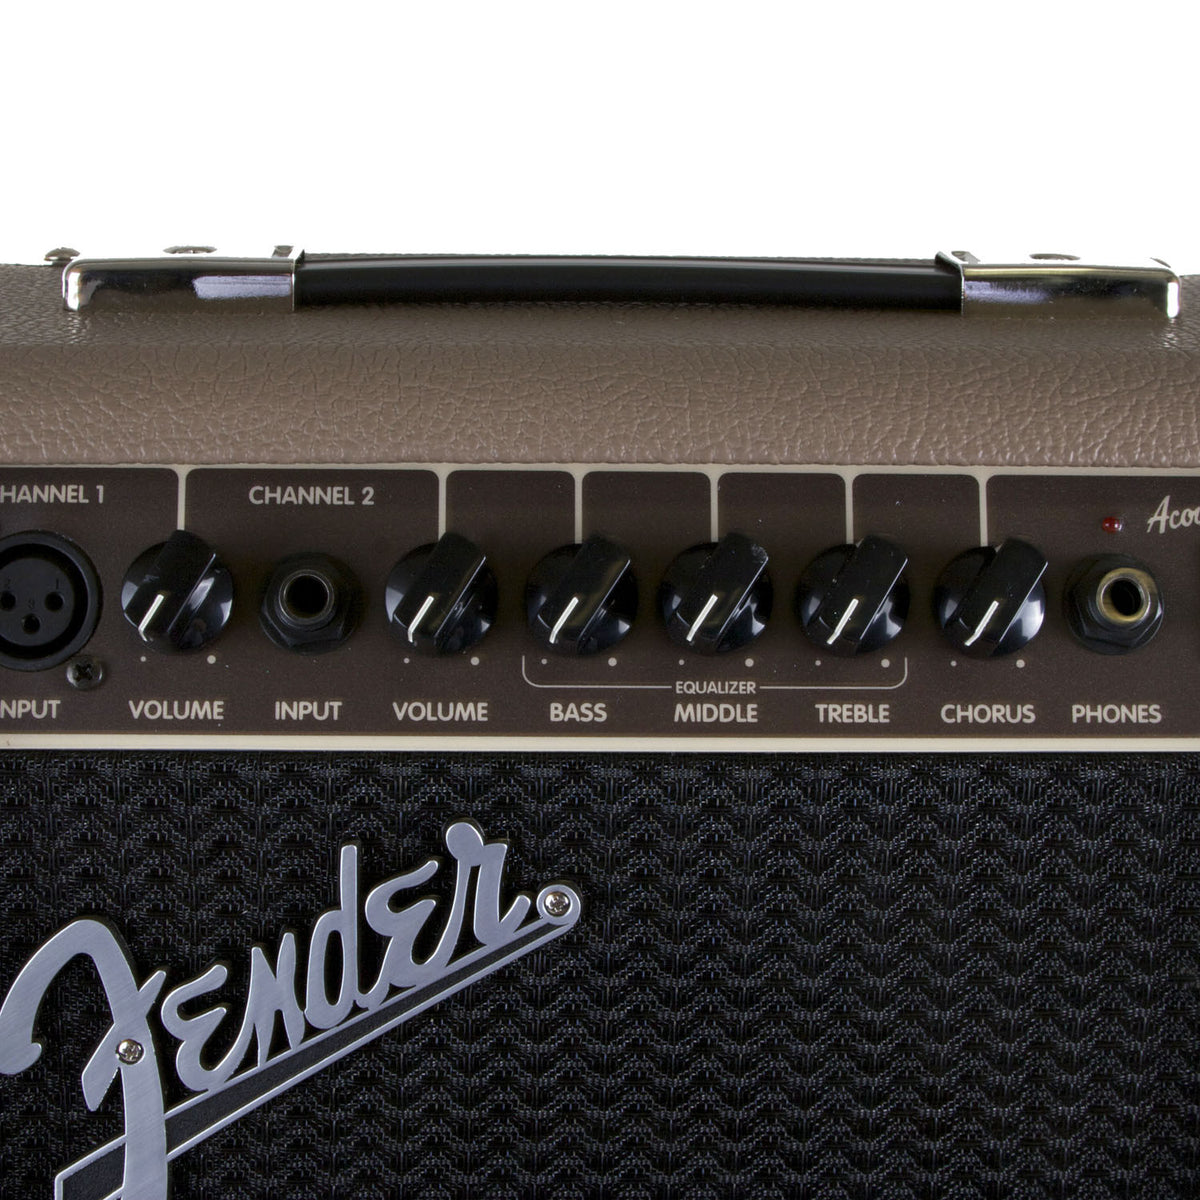 Fender Amp Acoustasonic 15 Brown 15W 1x6 - Garrett Park Guitars  - 3